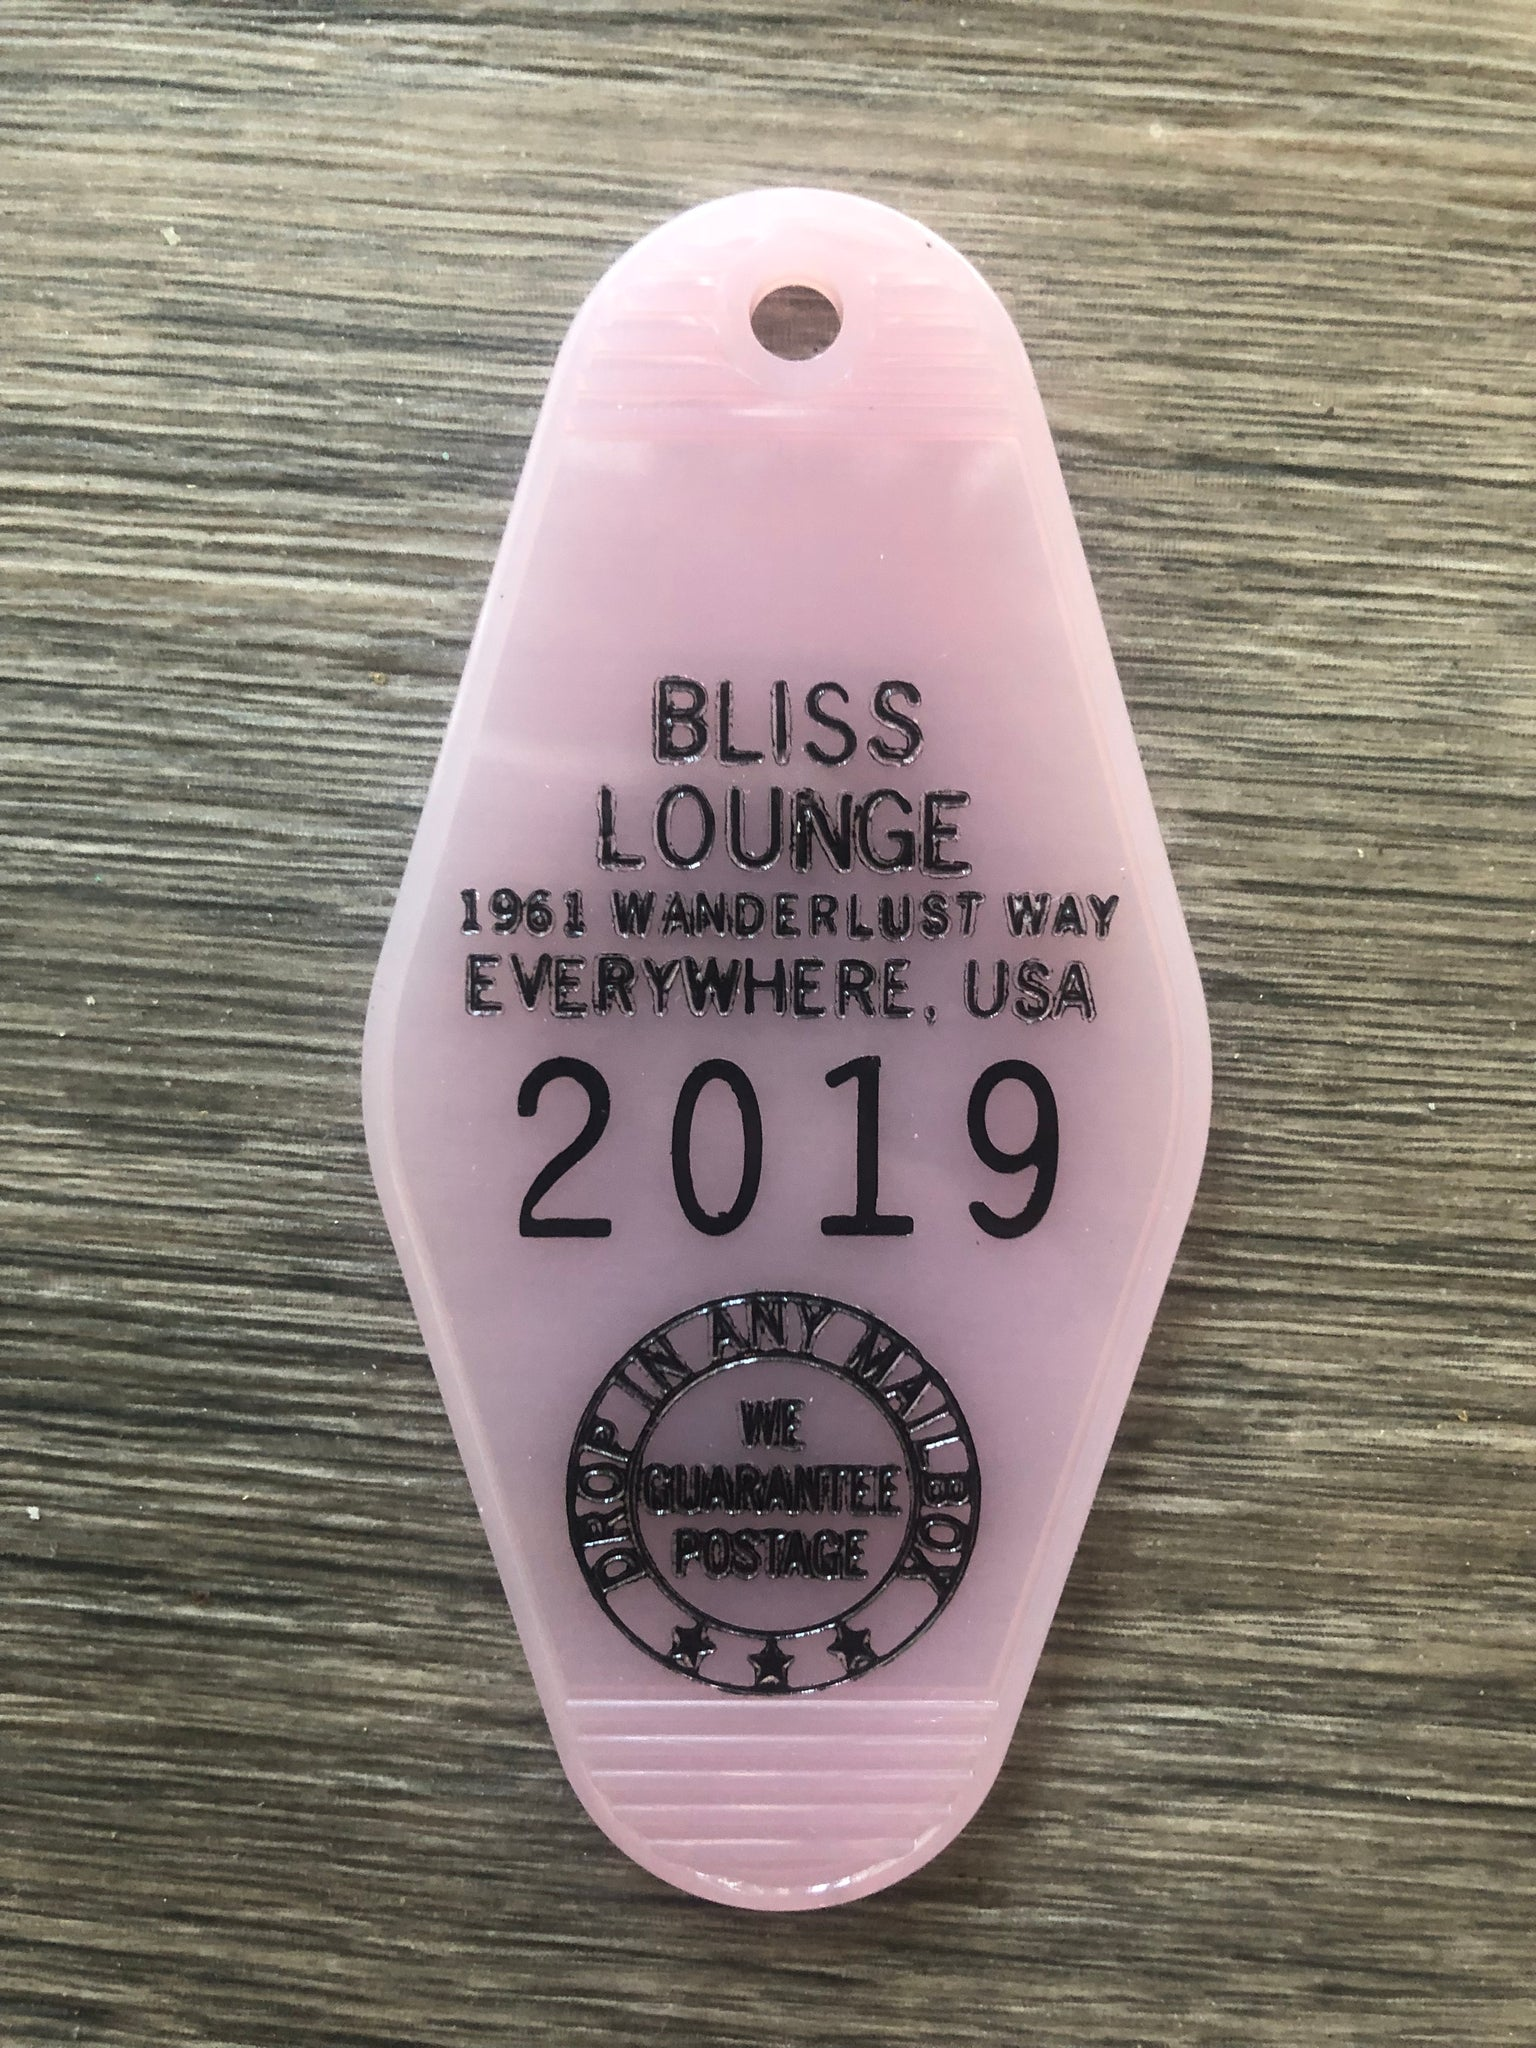 Bliss Lounge Key FOB